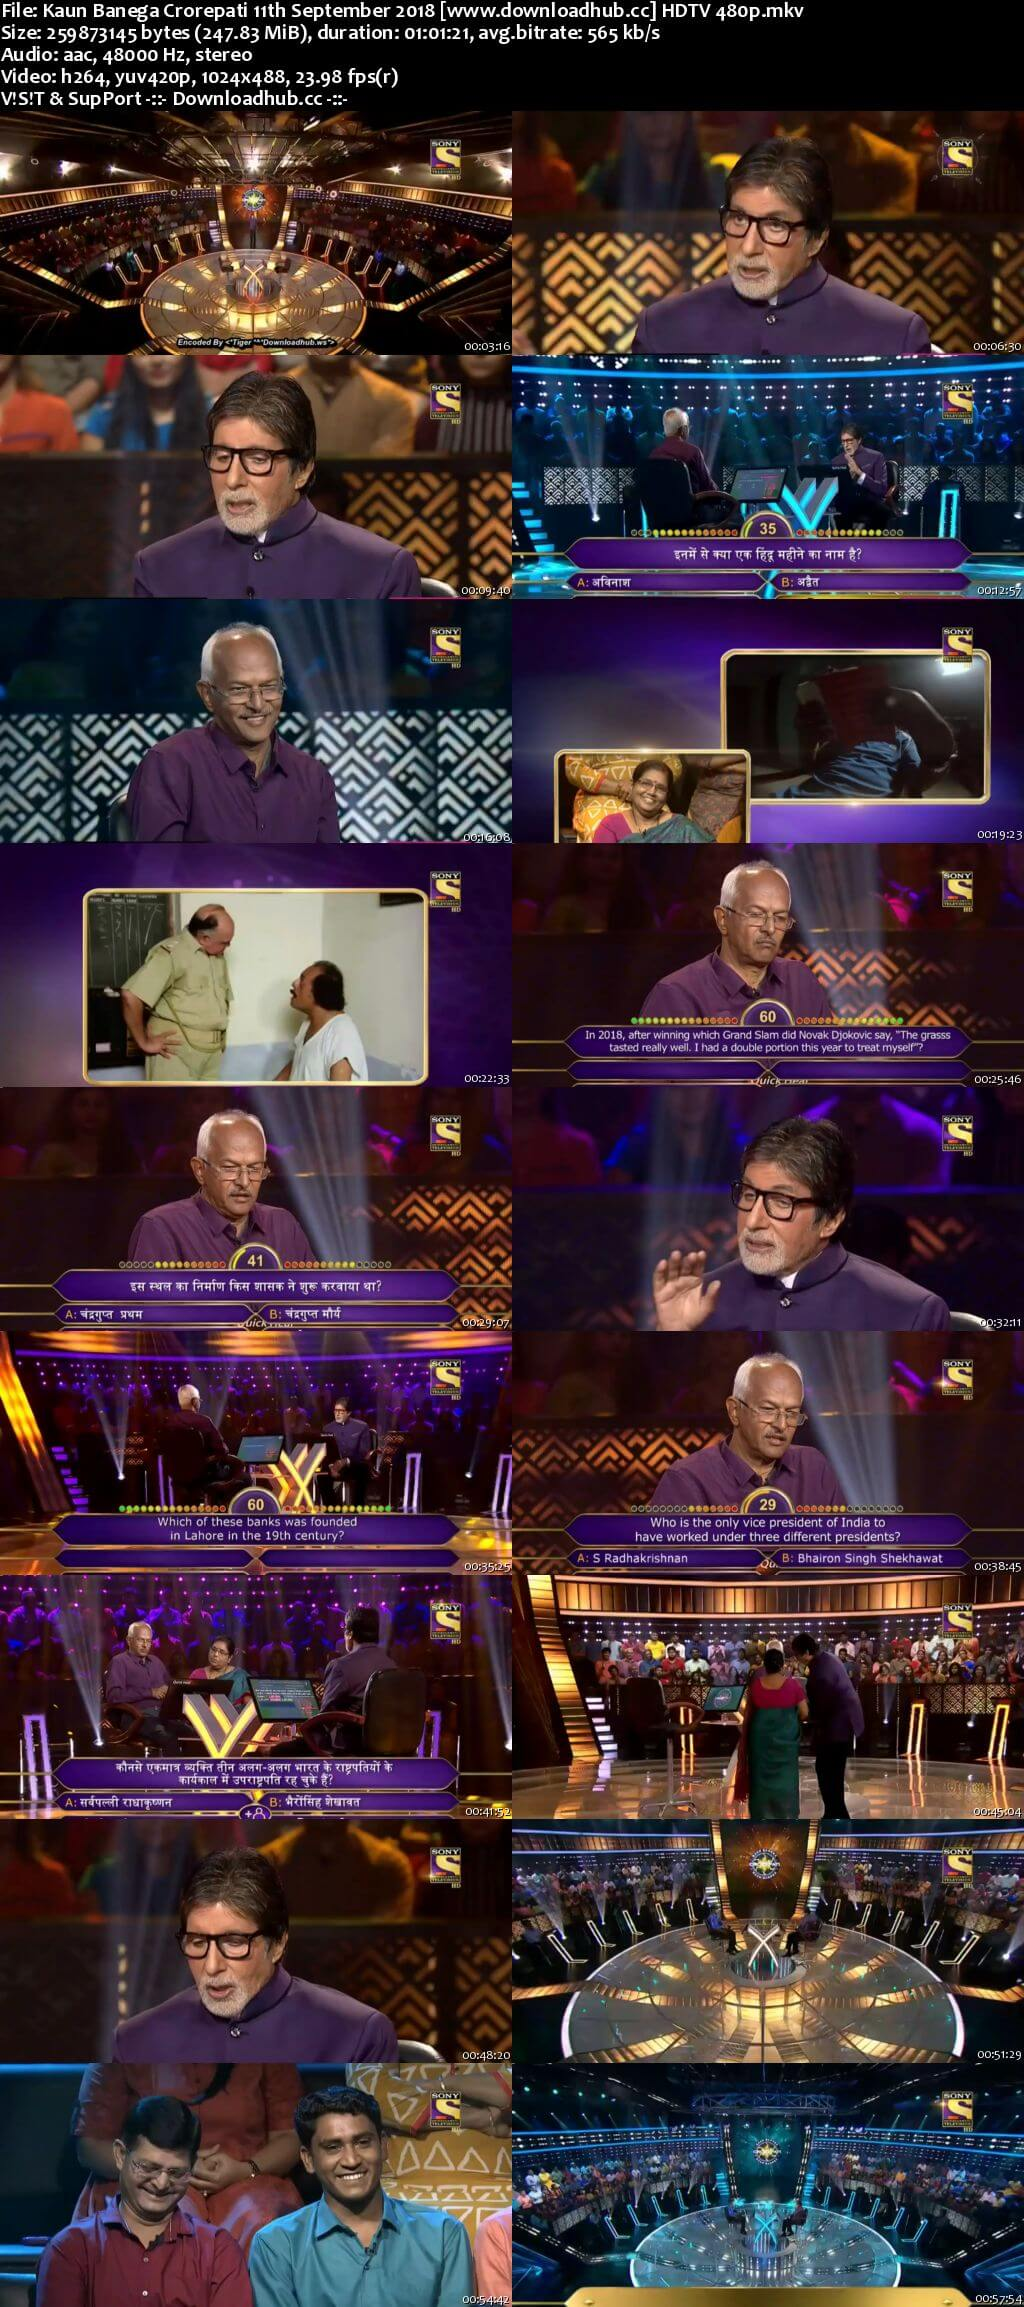 Kaun Banega Crorepati 11th September 2018 250MB HDTV 480p